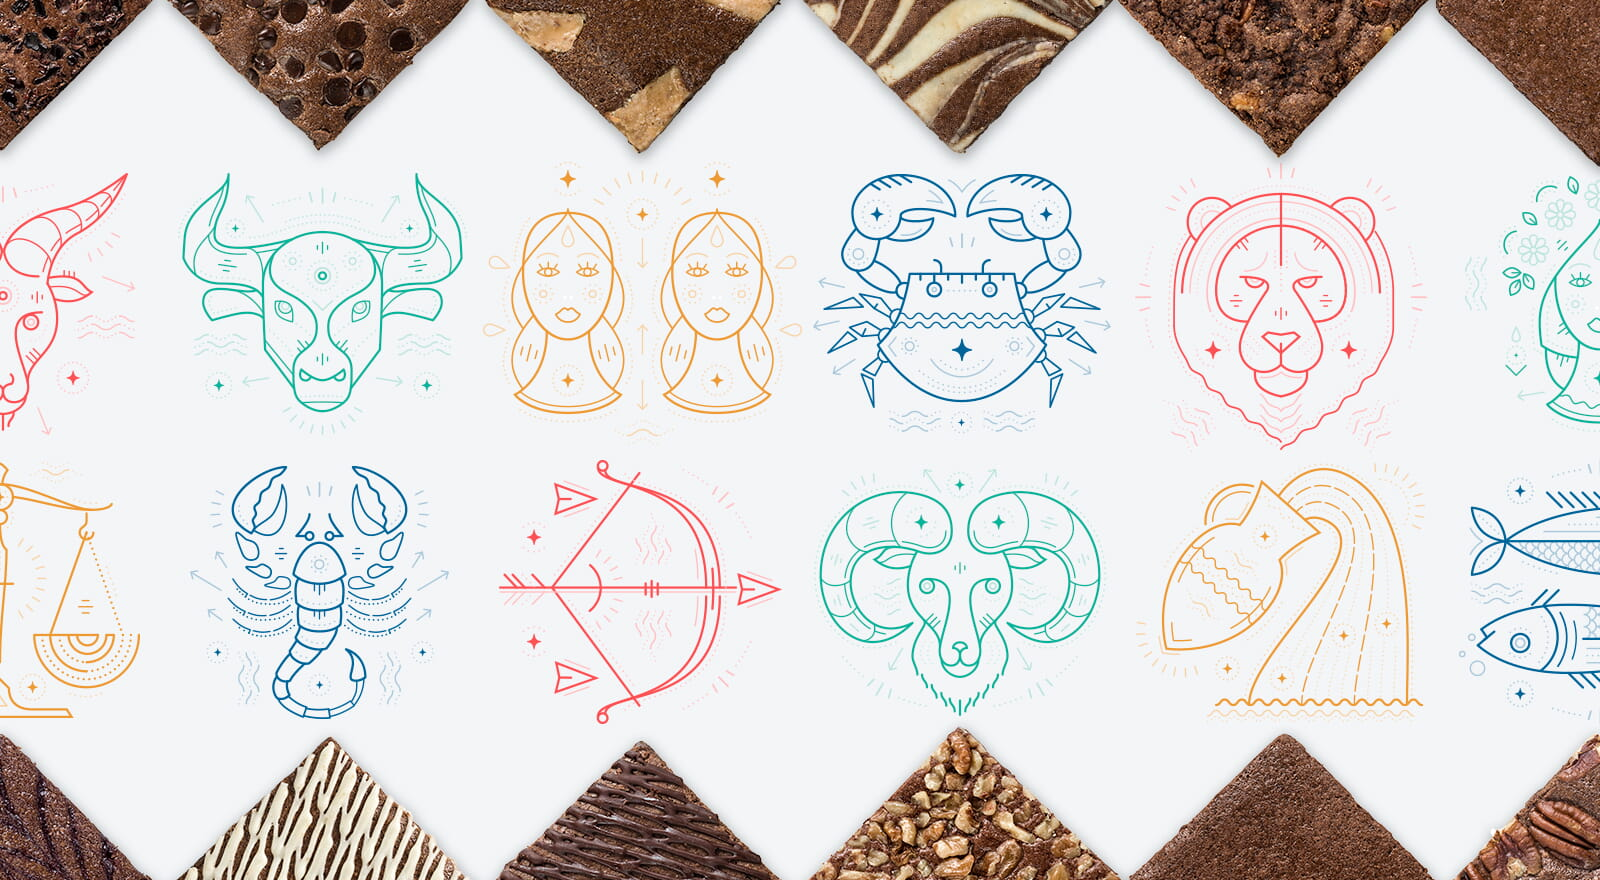 Your brownie flavor based on your Zodiac